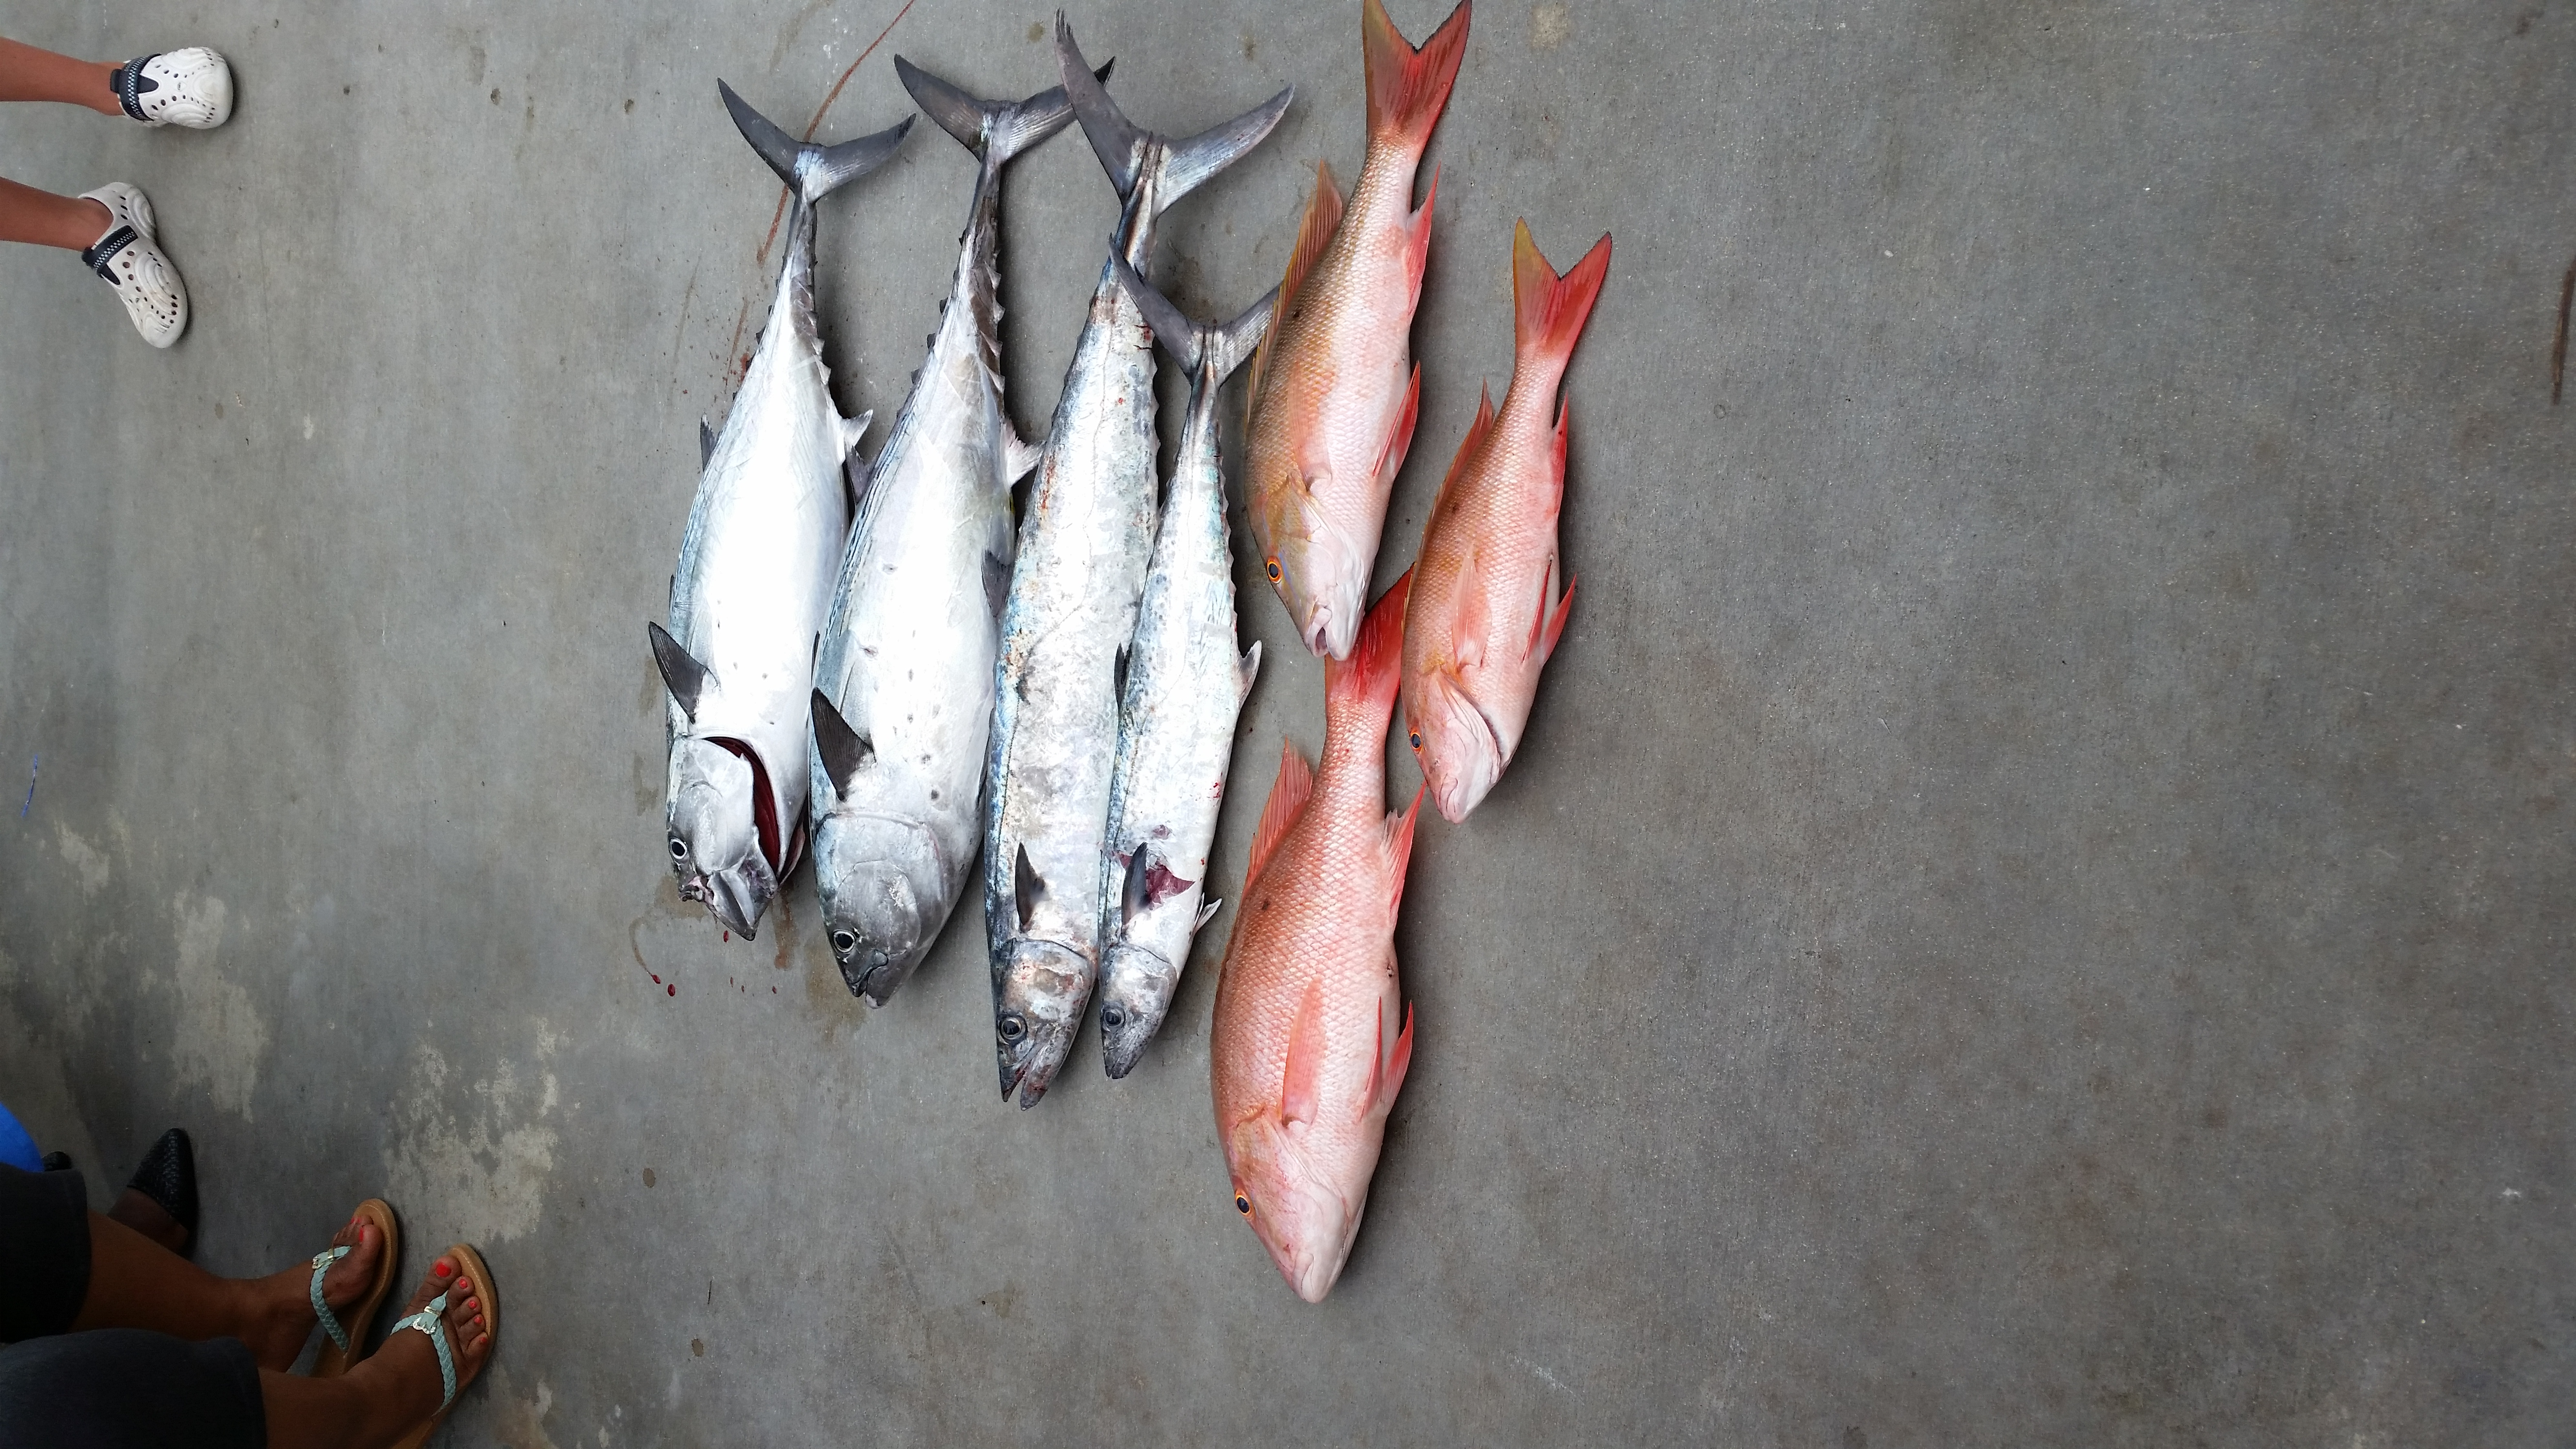 Tuesday, Juy 22, 2014 8am-12noon Mutton Snapper, Bonito, and King Makerel